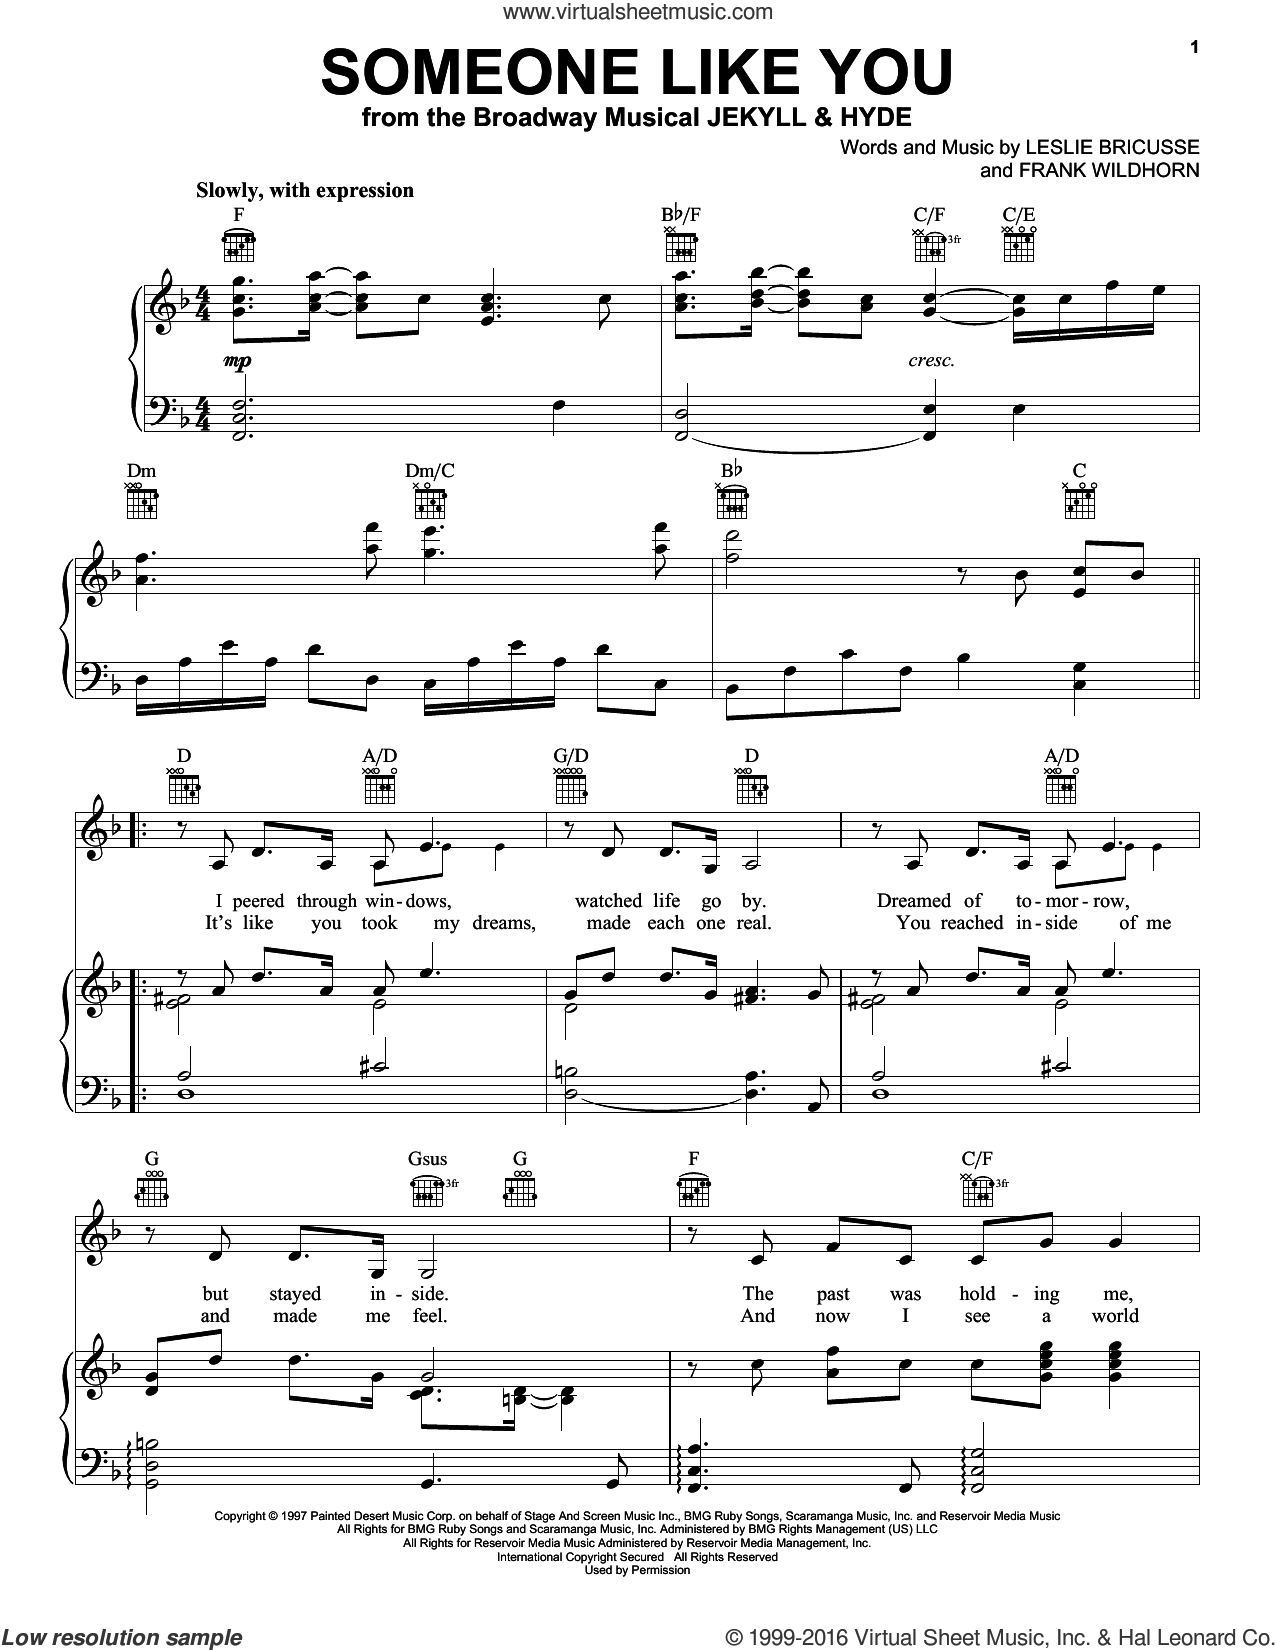 Someone Like You sheet music for voice, piano or guitar by Leslie Bricusse, Jekyll & Hyde (Musical) and Frank Wildhorn, wedding score, intermediate skill level